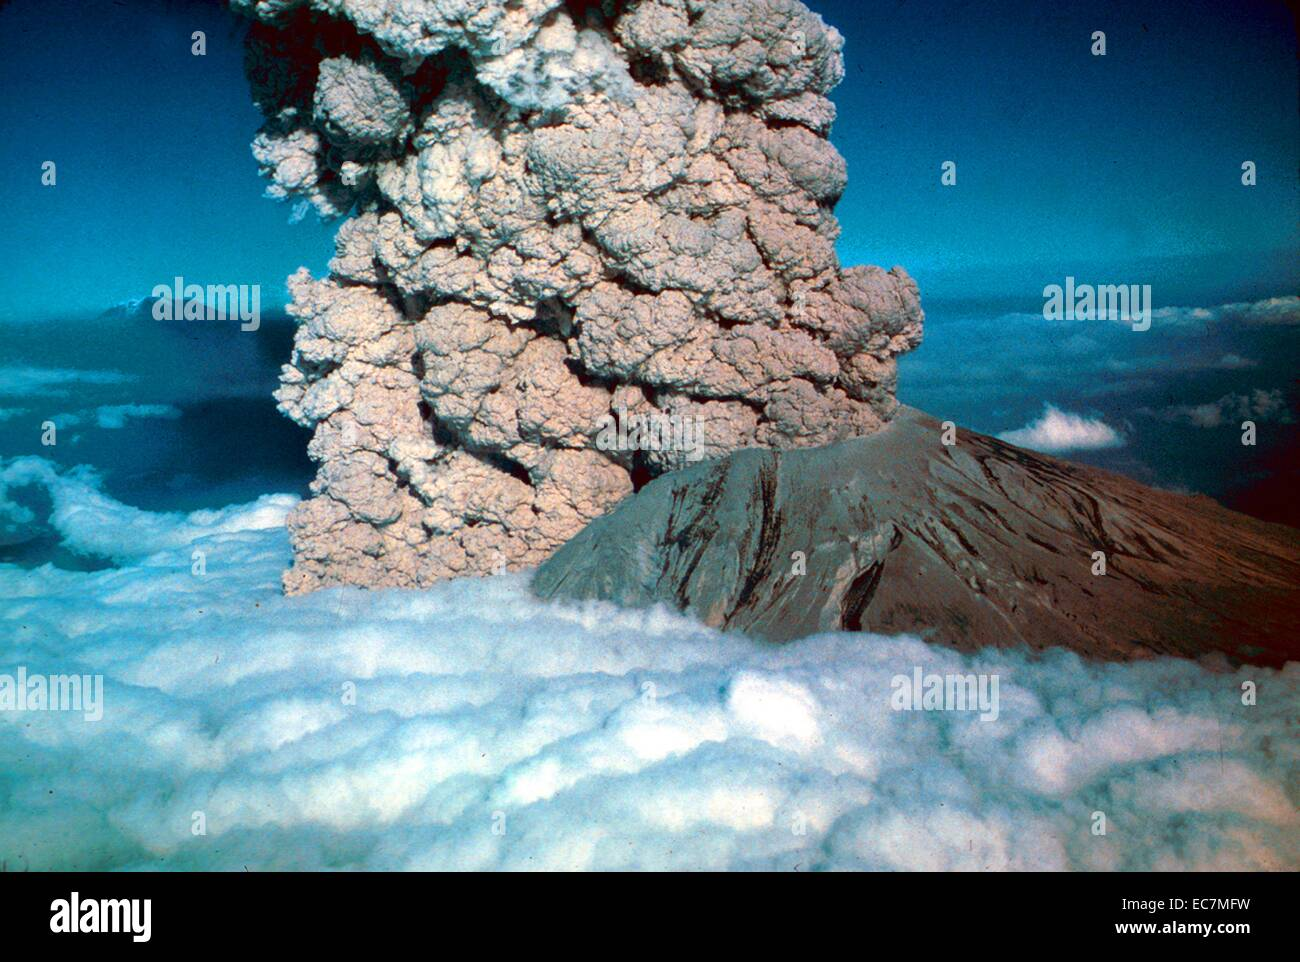 volcanic eruption occurred at Mount St. Helens - Stock Image